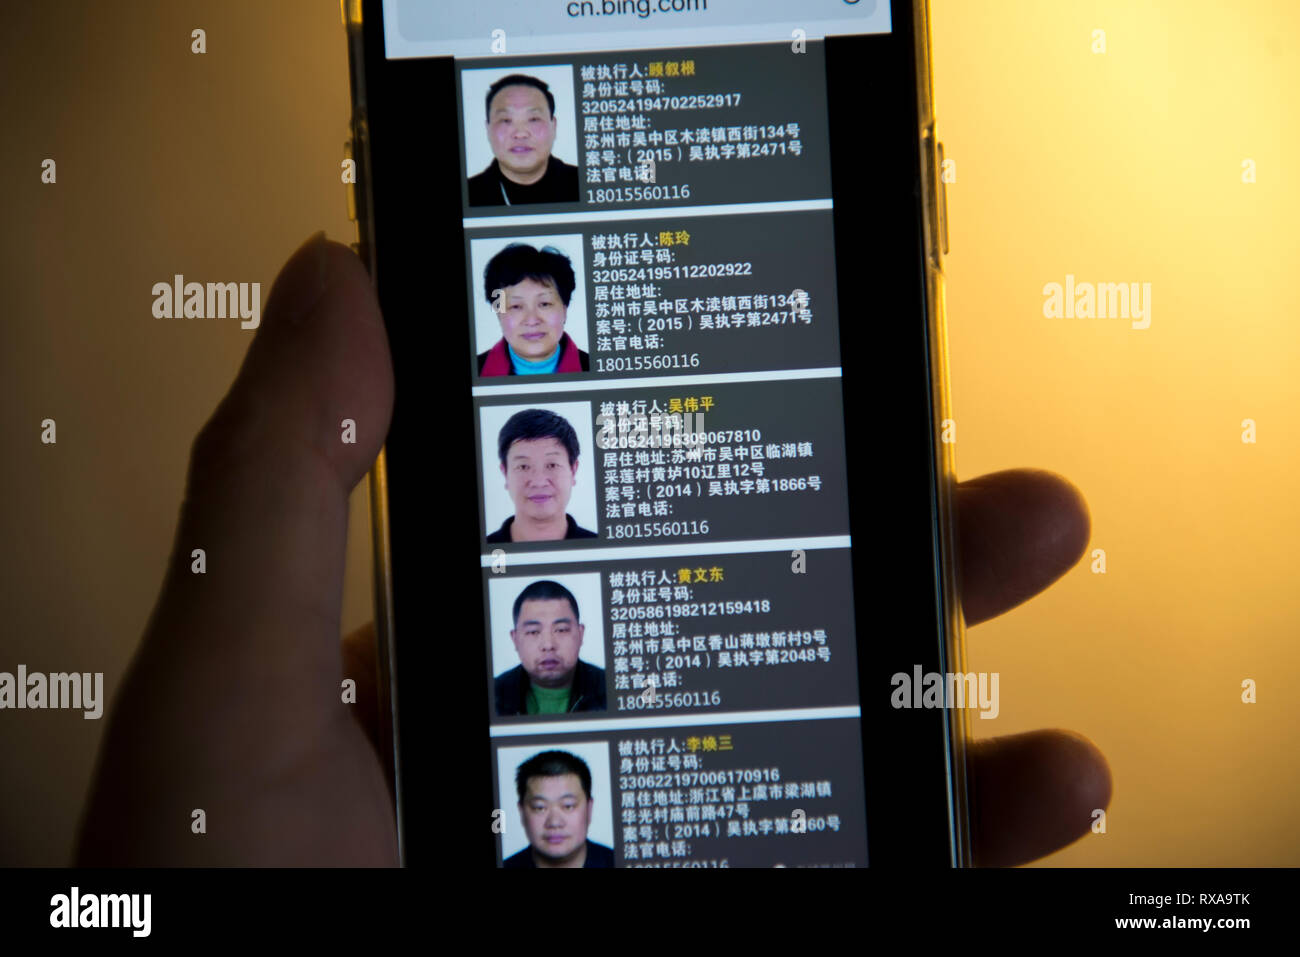 Chinese local governments name and shame stubborn debtors by showing their pictures and personal information online. - Stock Image